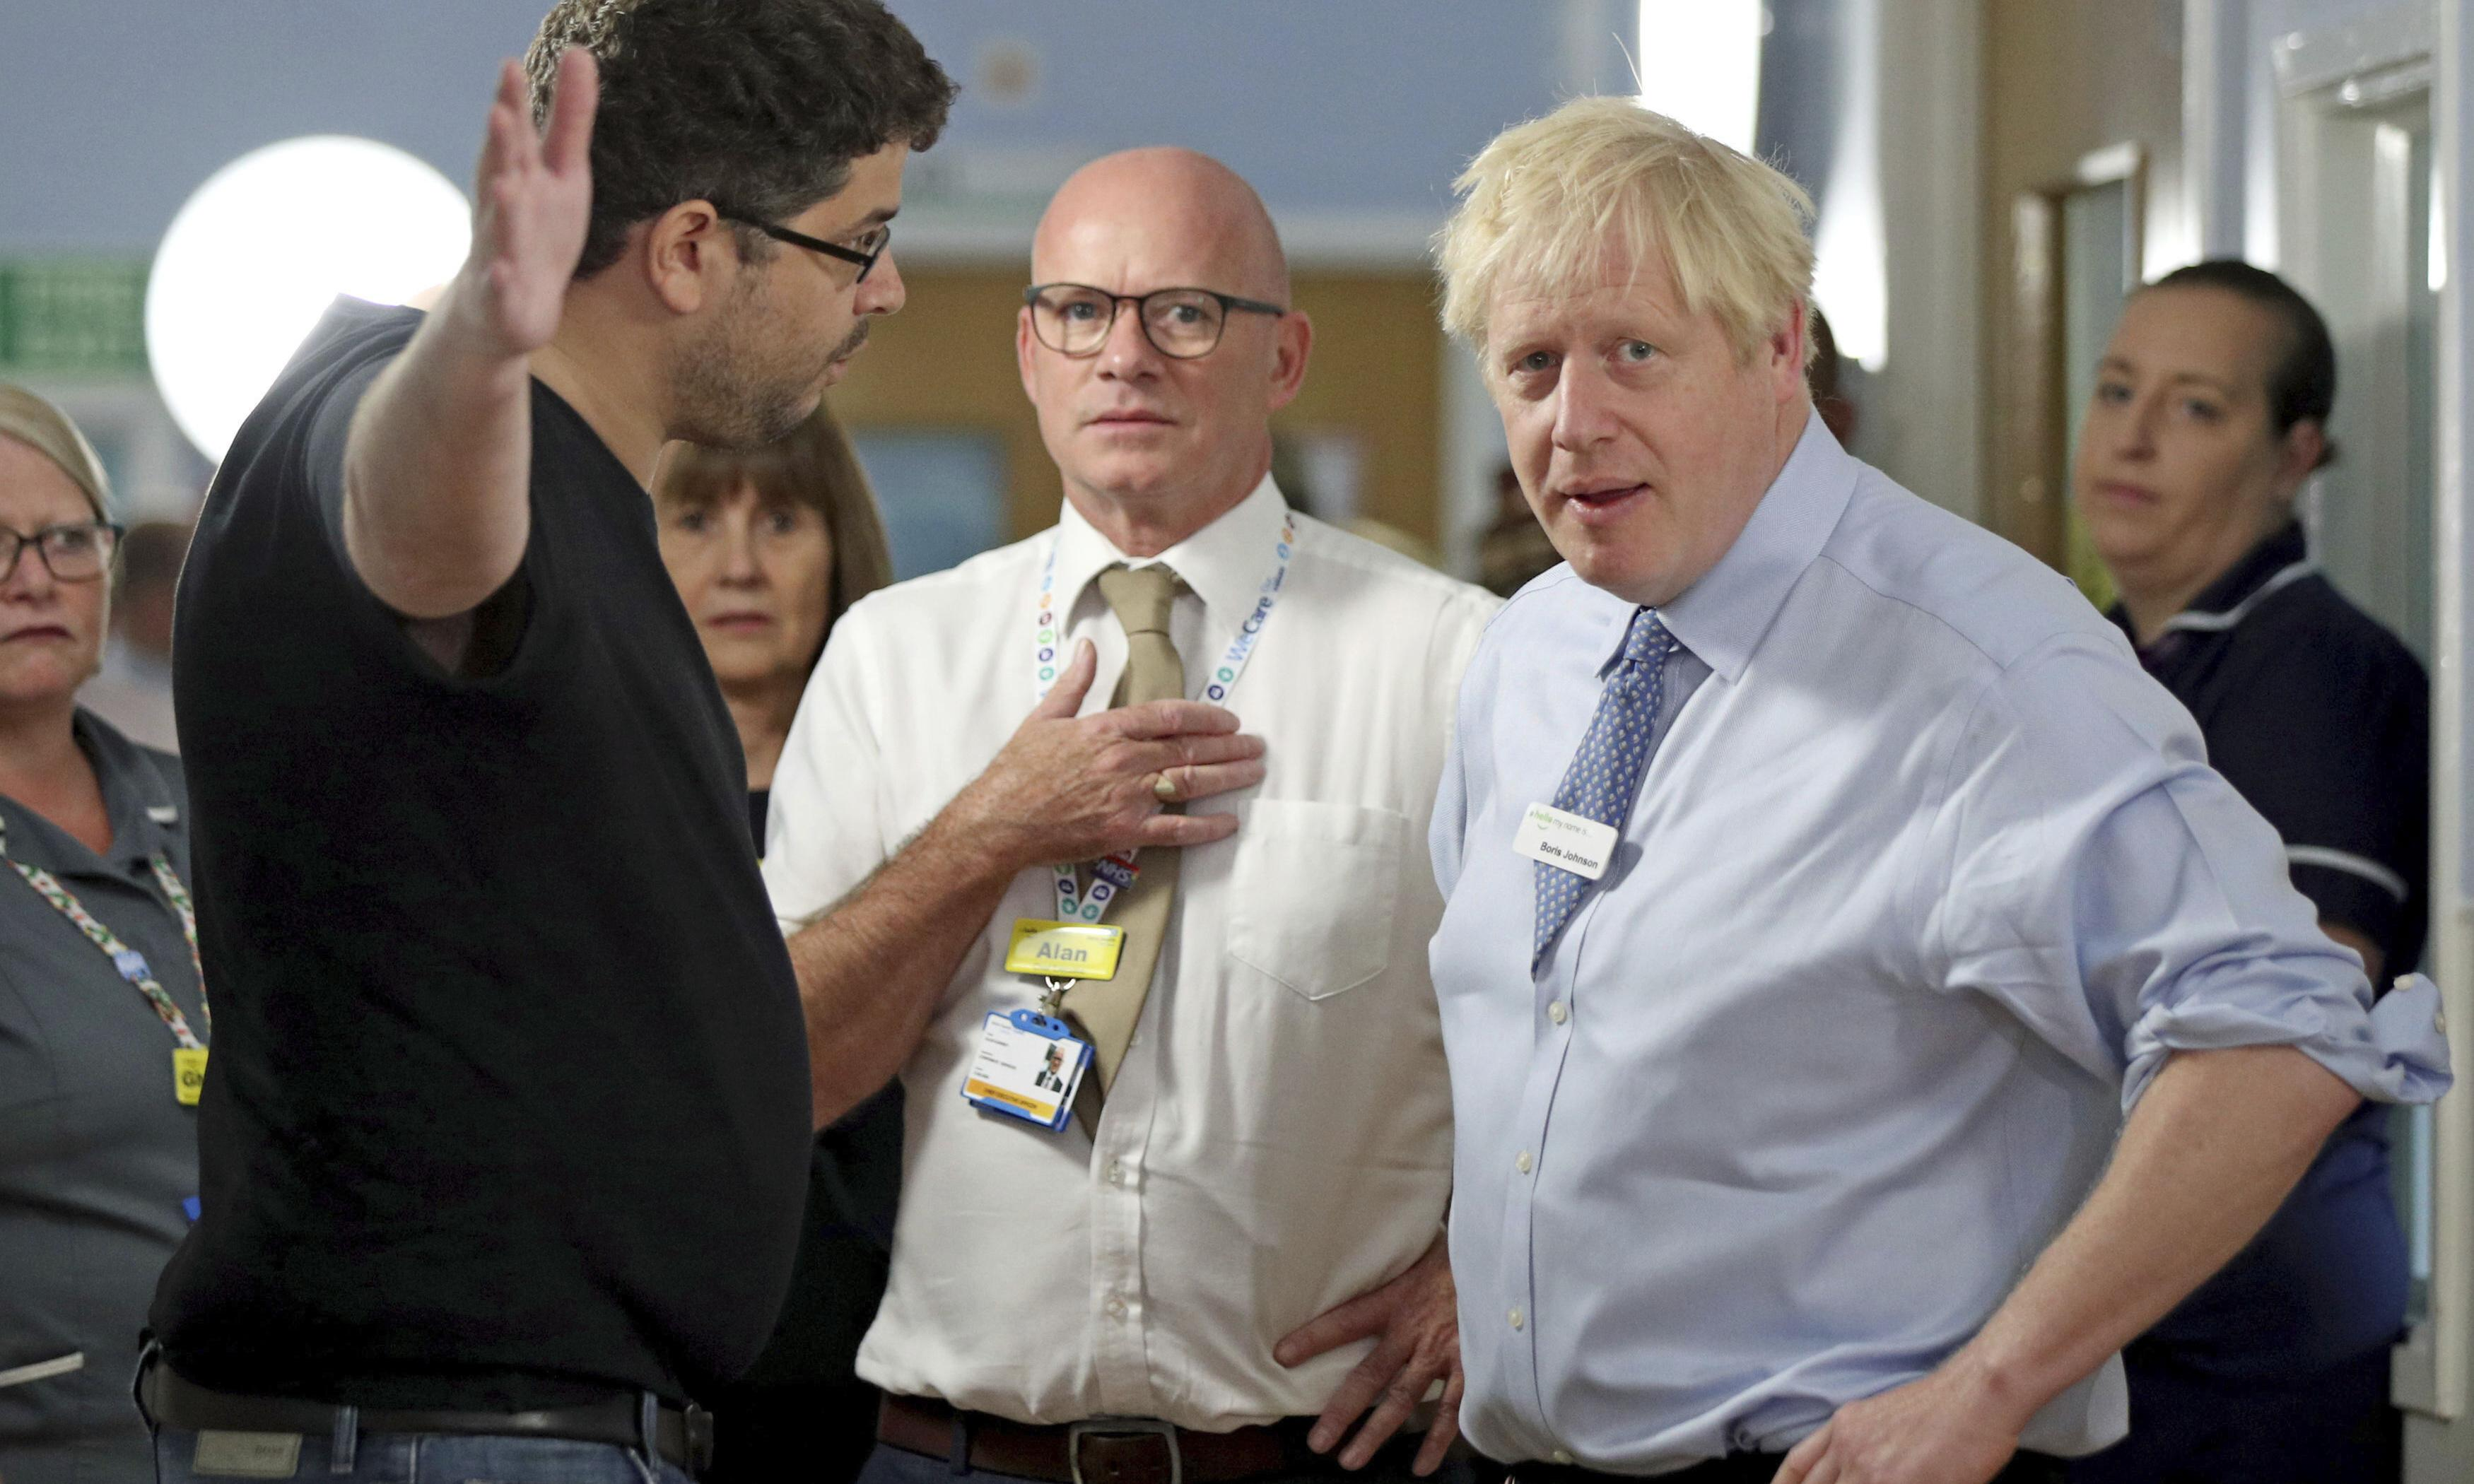 Boris Johnson's confrontation: don't lose sight of the real story